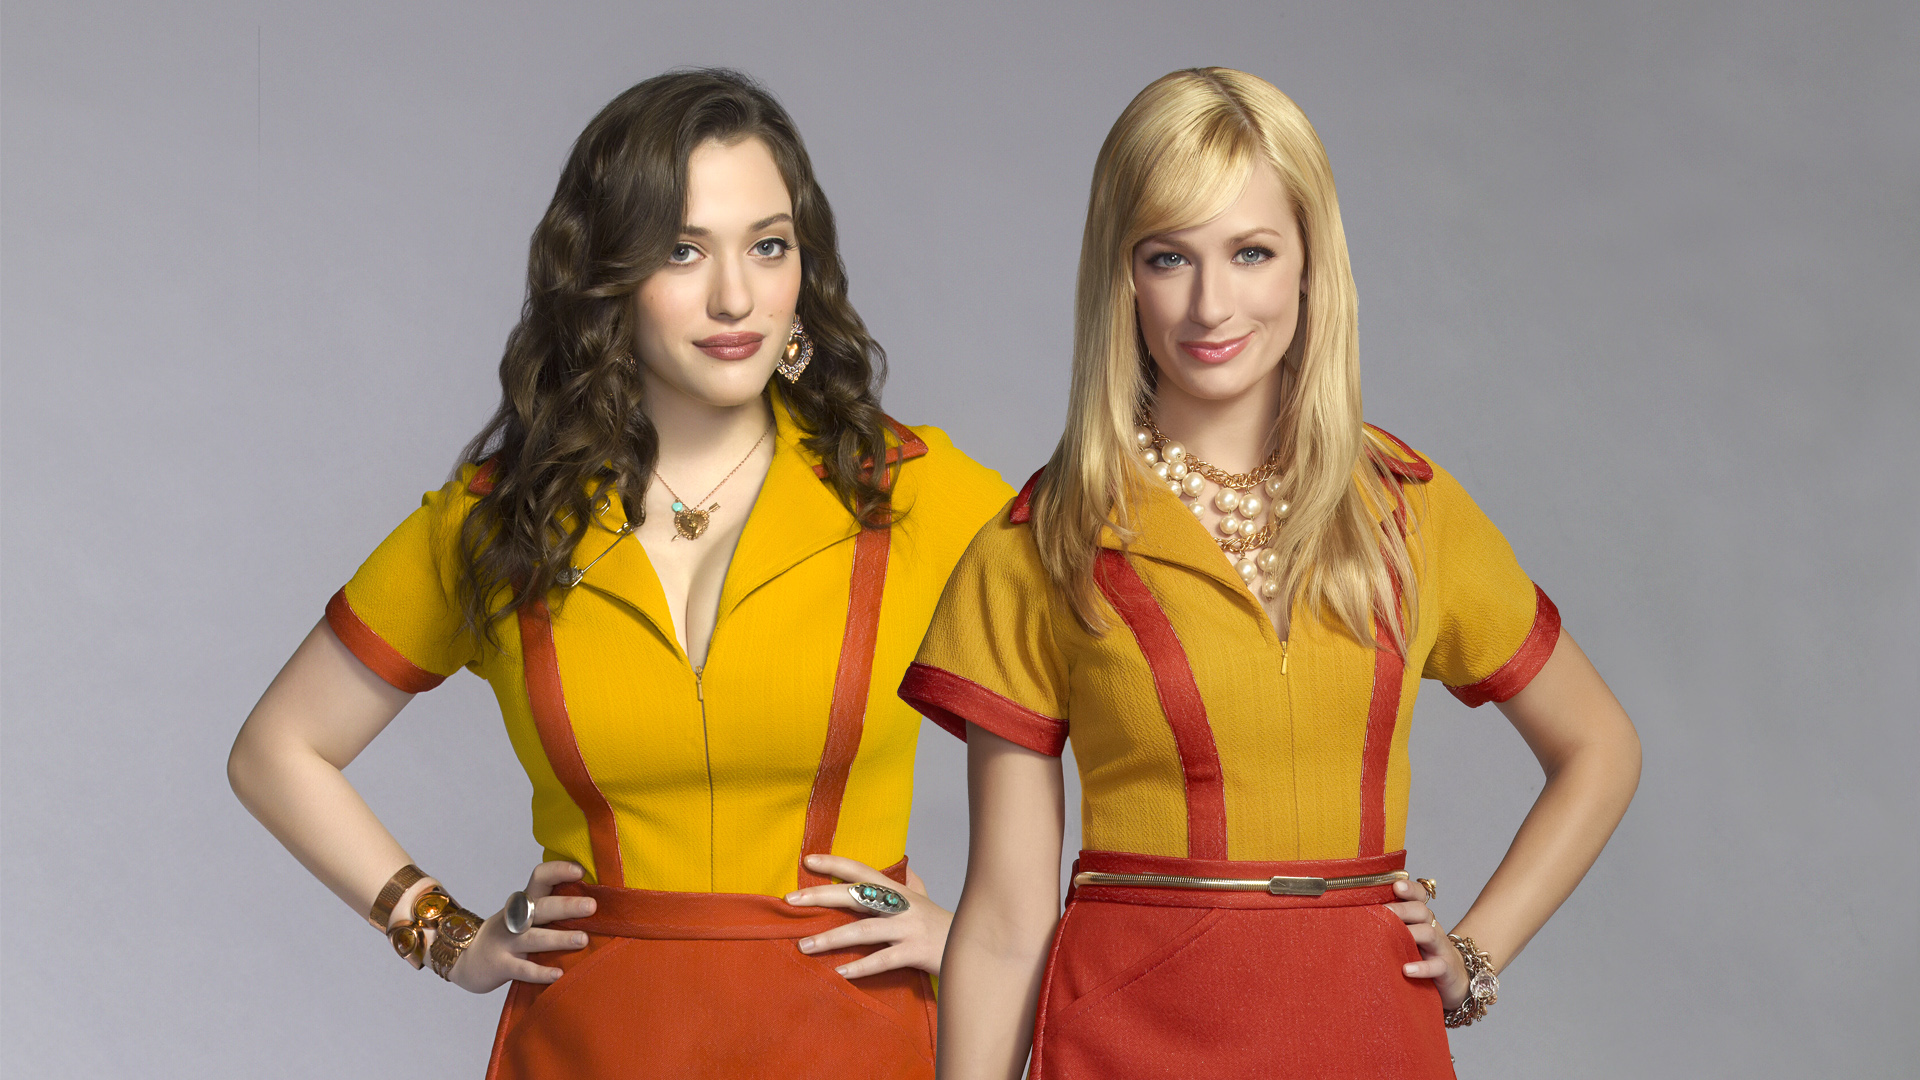 Season 3 2 Broke Girls